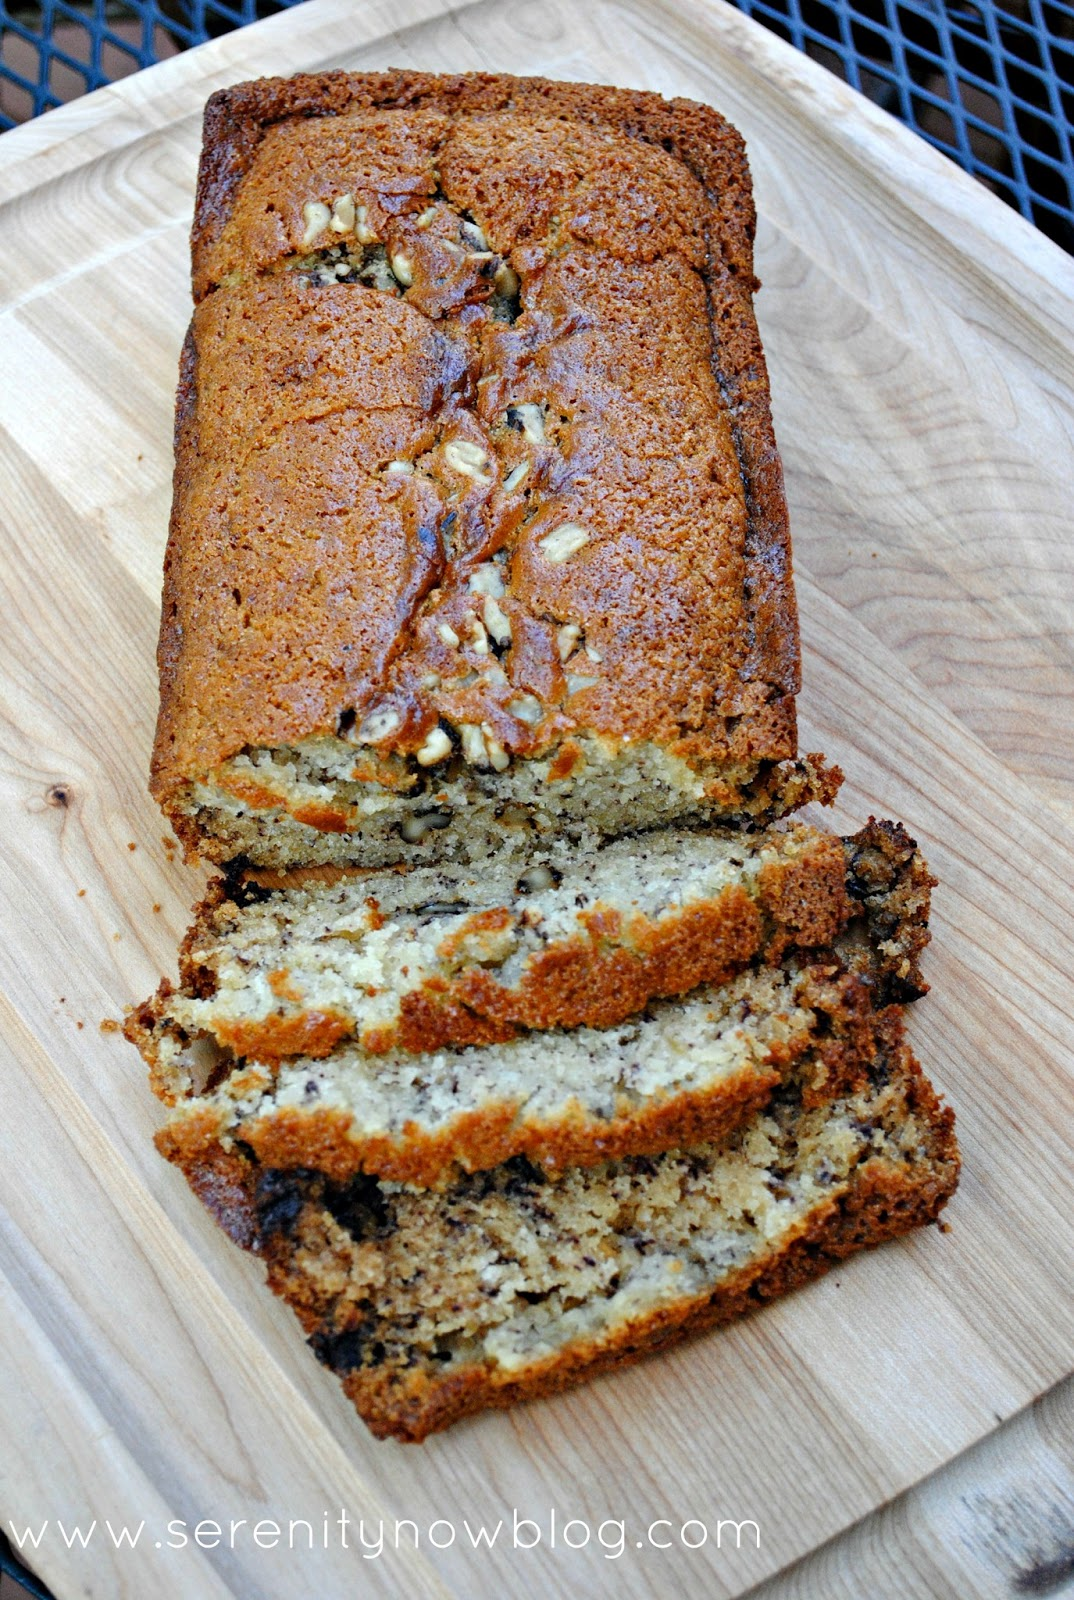 Serenity now banana bread recipe with one banana banana bread recipe with one banana from serenity now blog forumfinder Choice Image